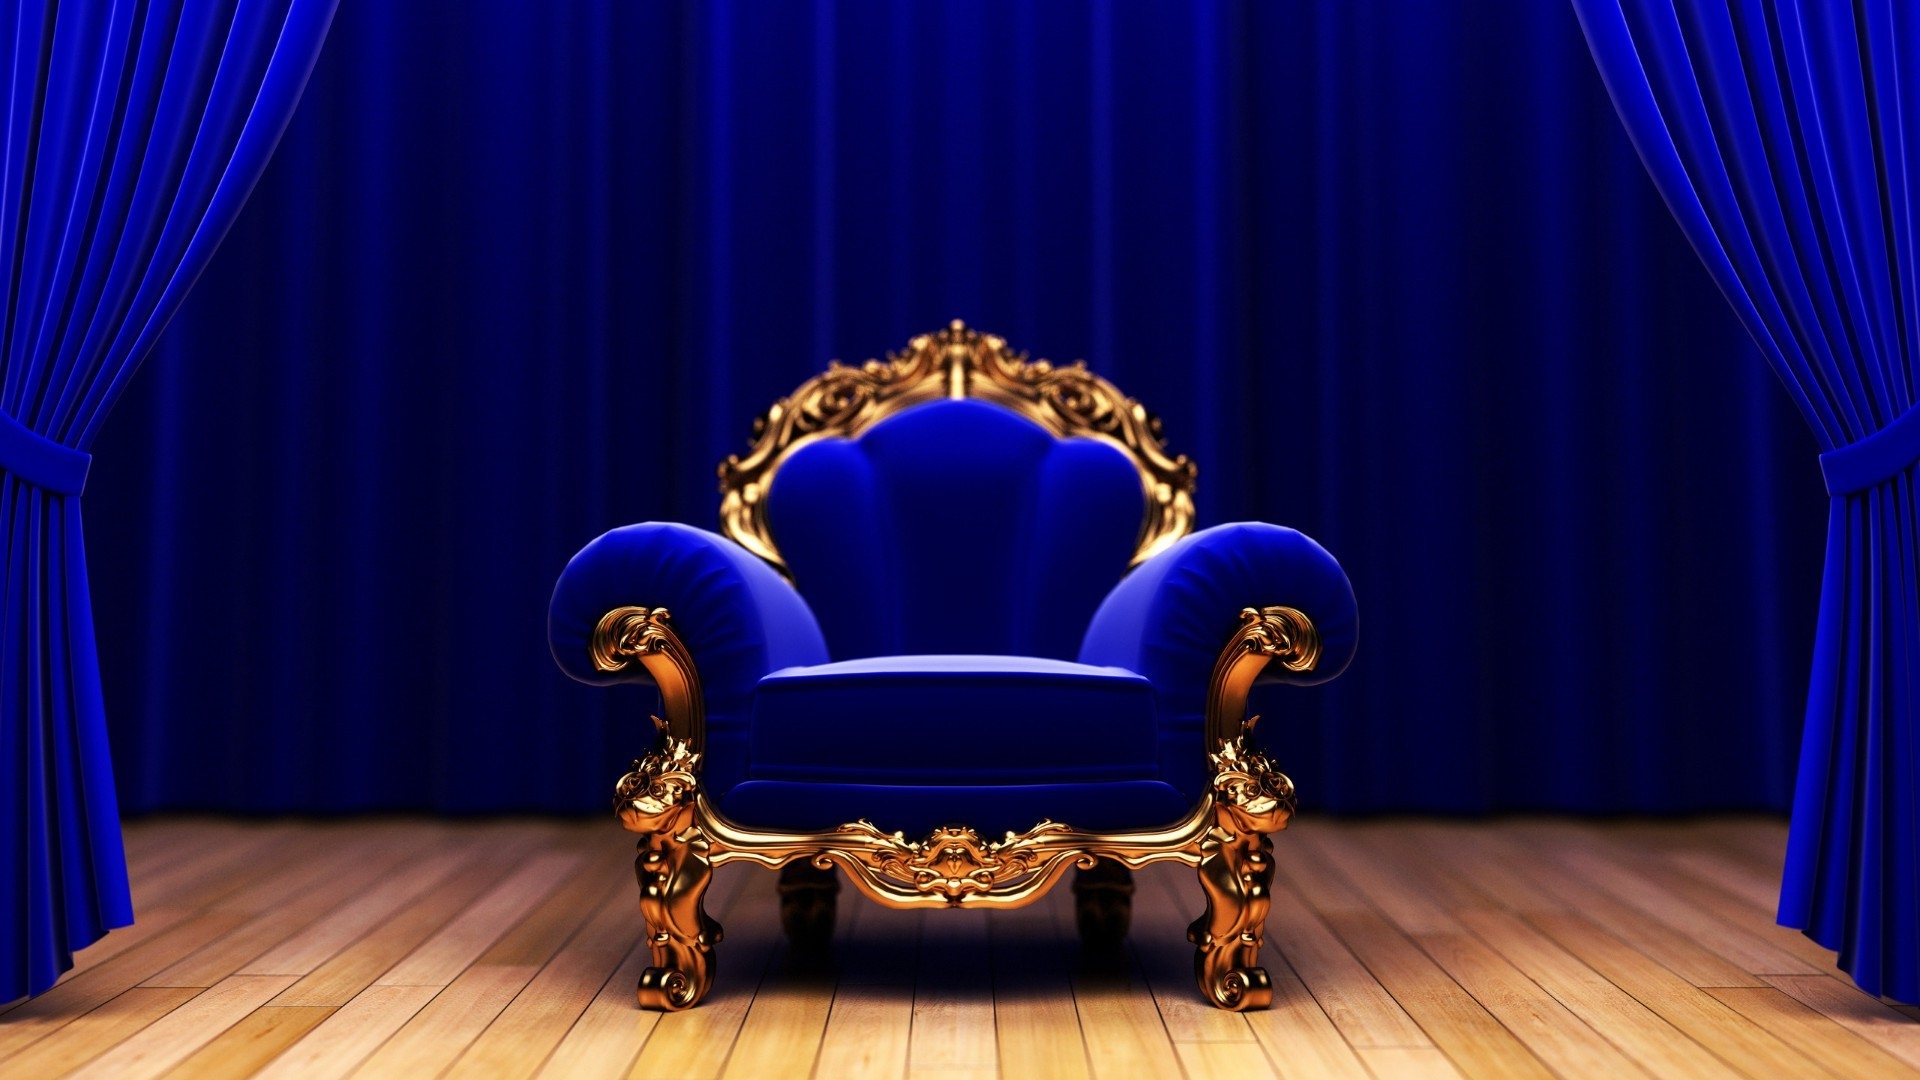 furniture opera stage theater curtain seat room velvet movie chair lamp indoors design